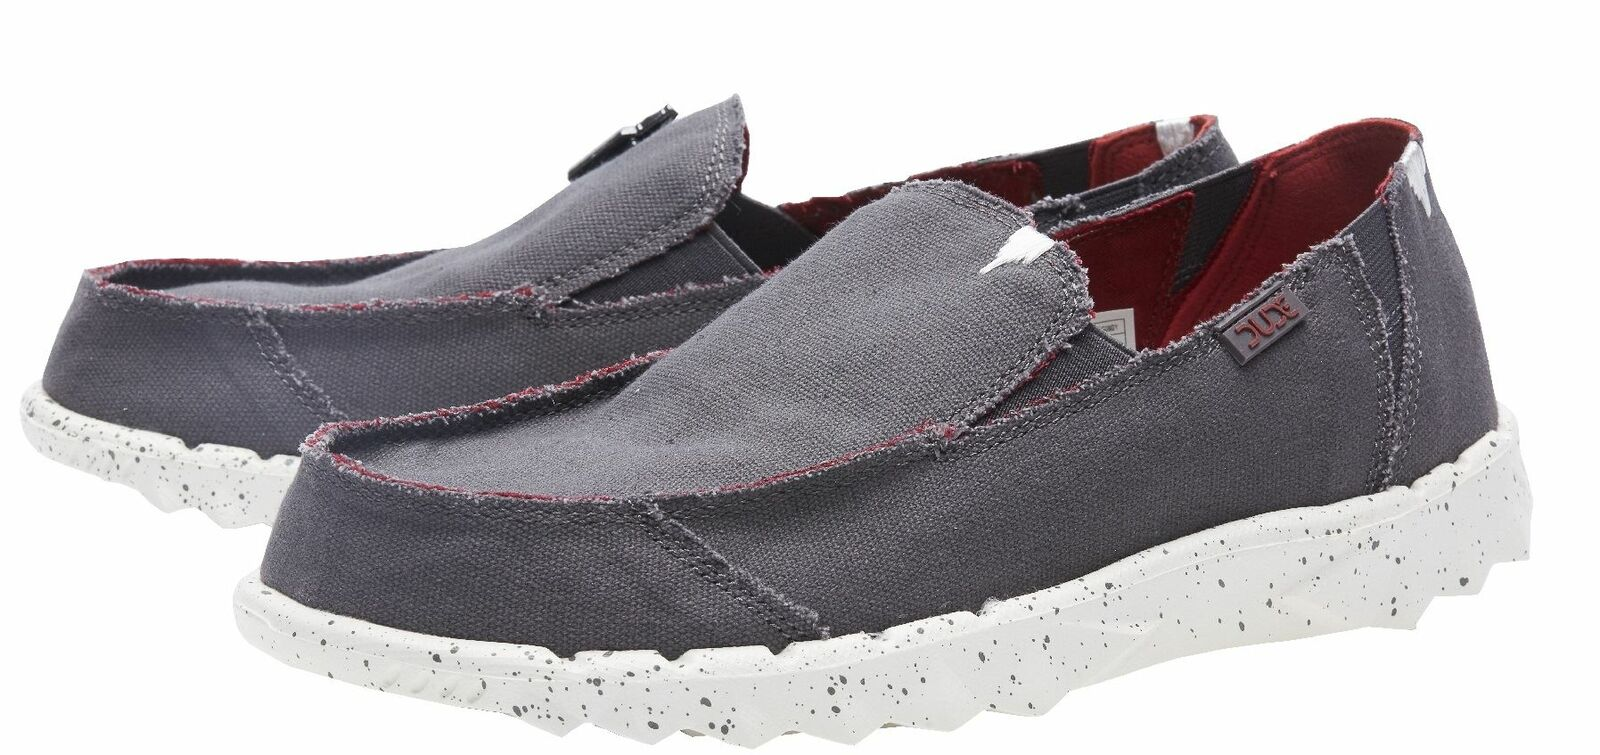 DUDE shoes Farty Funk Grey Burgundy Slip On shoes Mule in UK6 to UK14